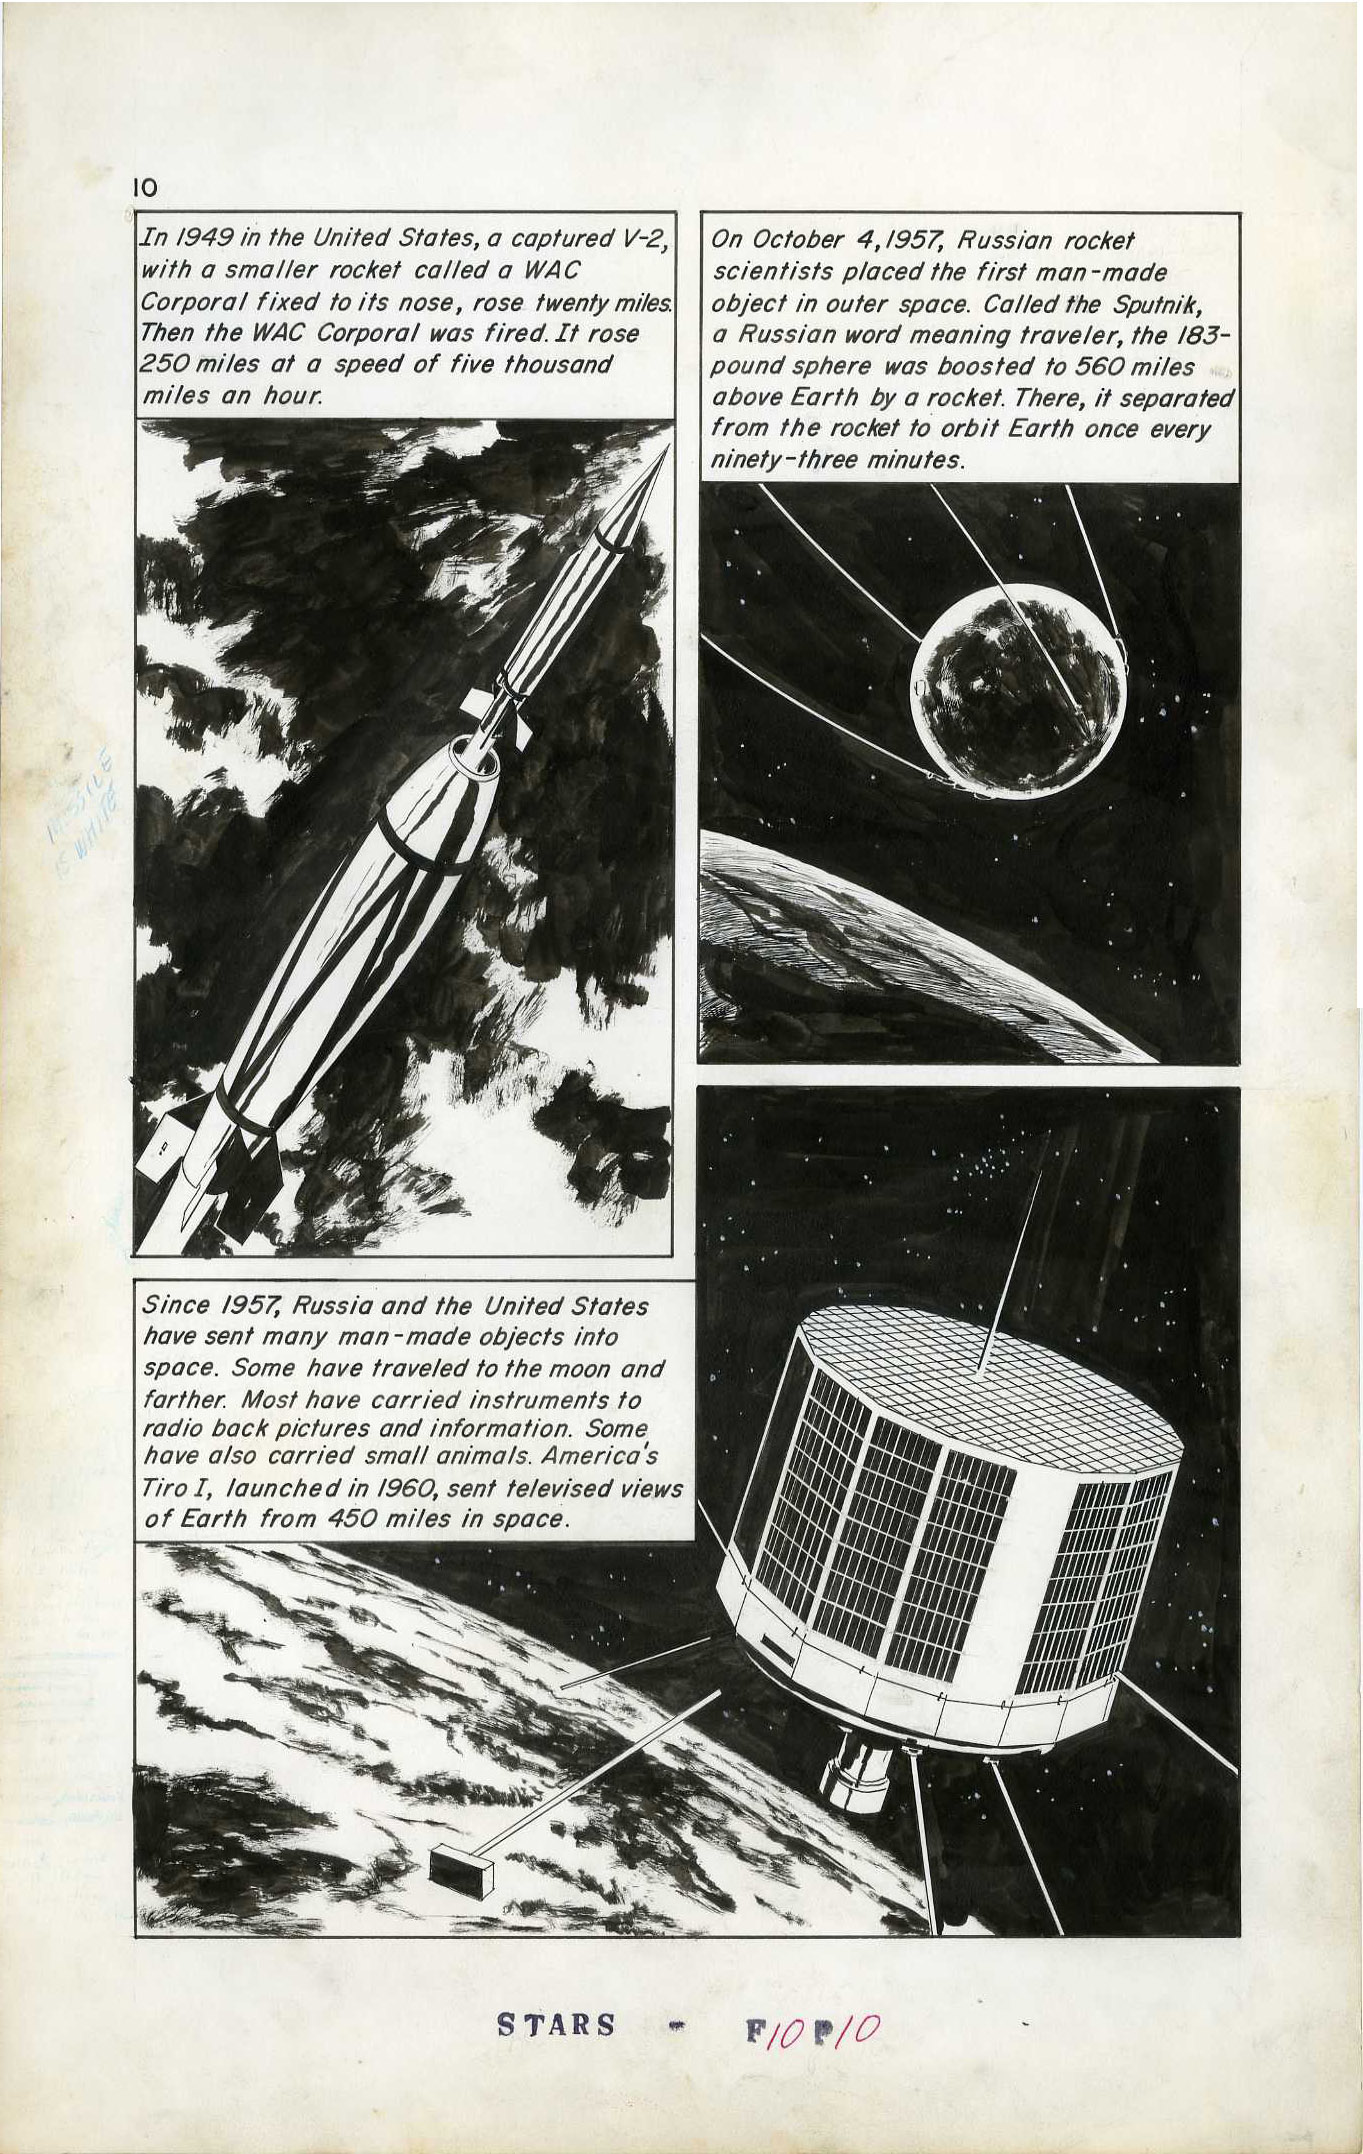 ANGELO TORRES - CLASSICS ILLUSTRATED #165 TO THE STARS PAGE 10 ORIGINAL ART